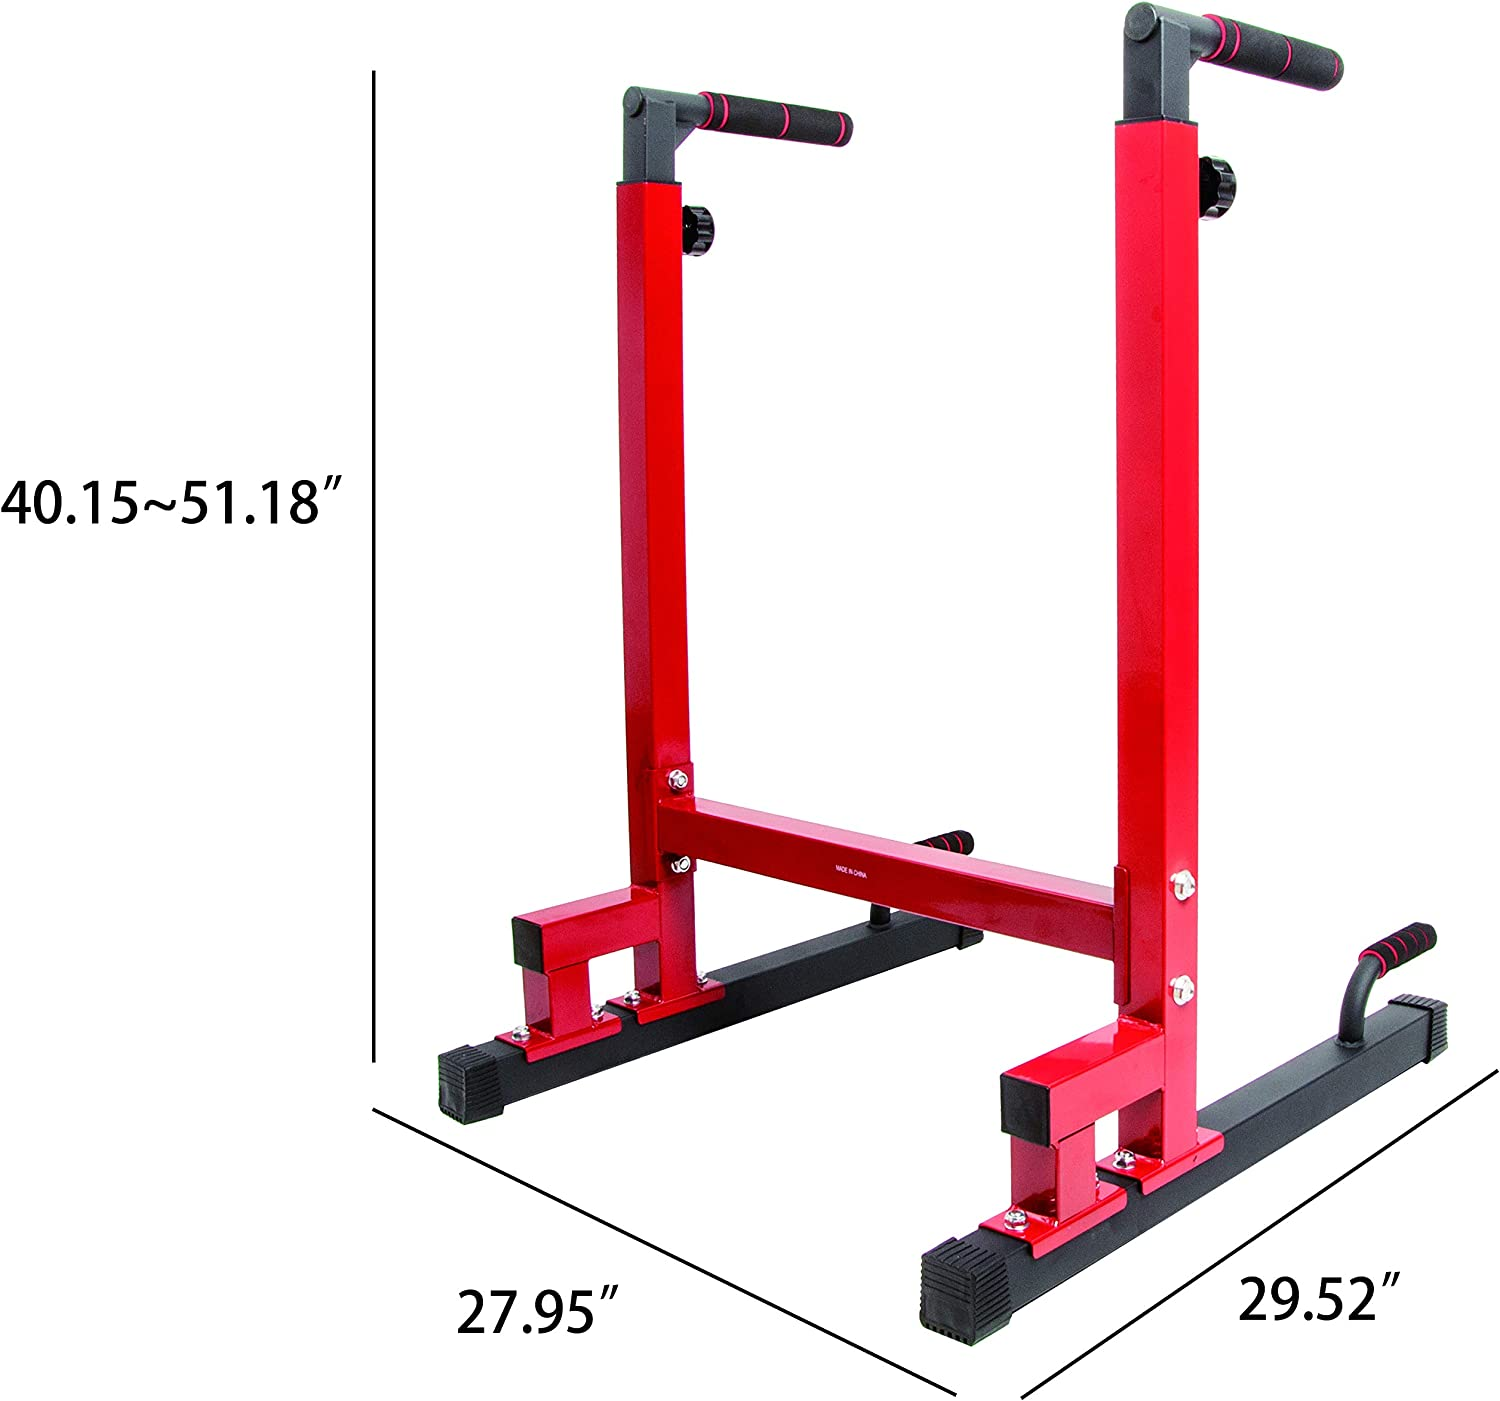 Adjustable height heavy duty dip stand